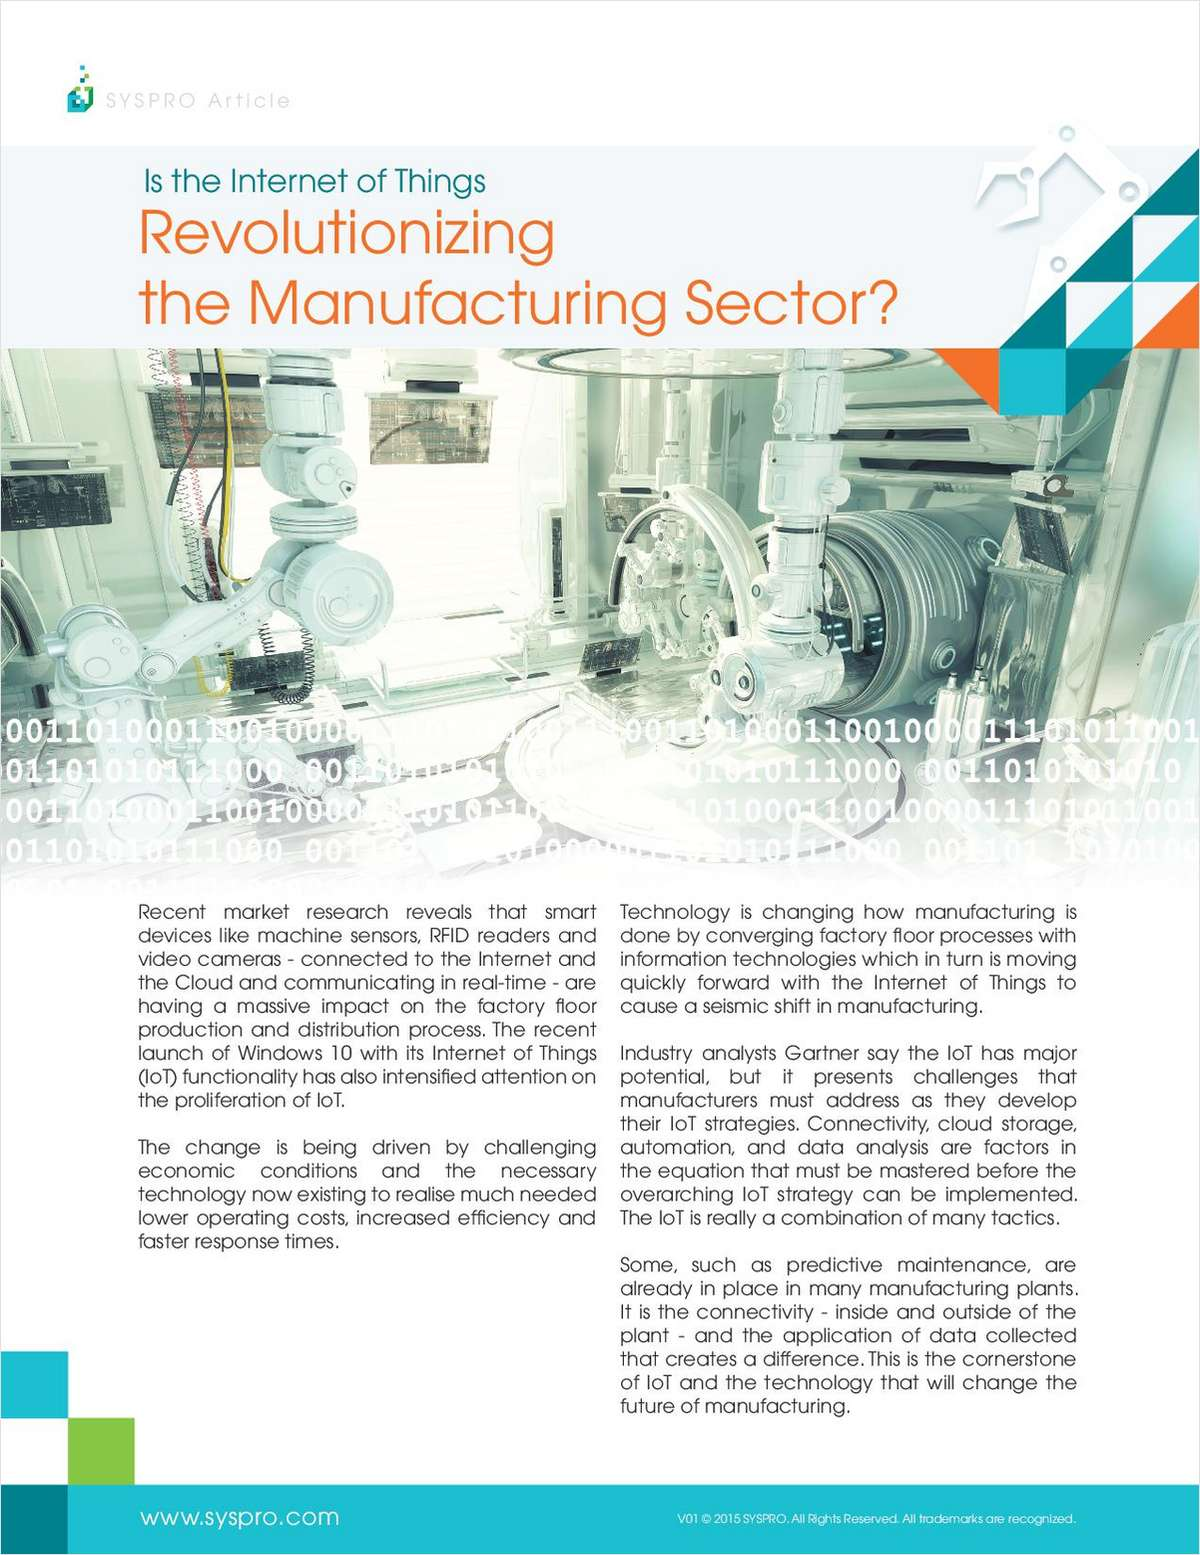 Is the Internet of Things Revolutionizing the Manufacturing Sector?